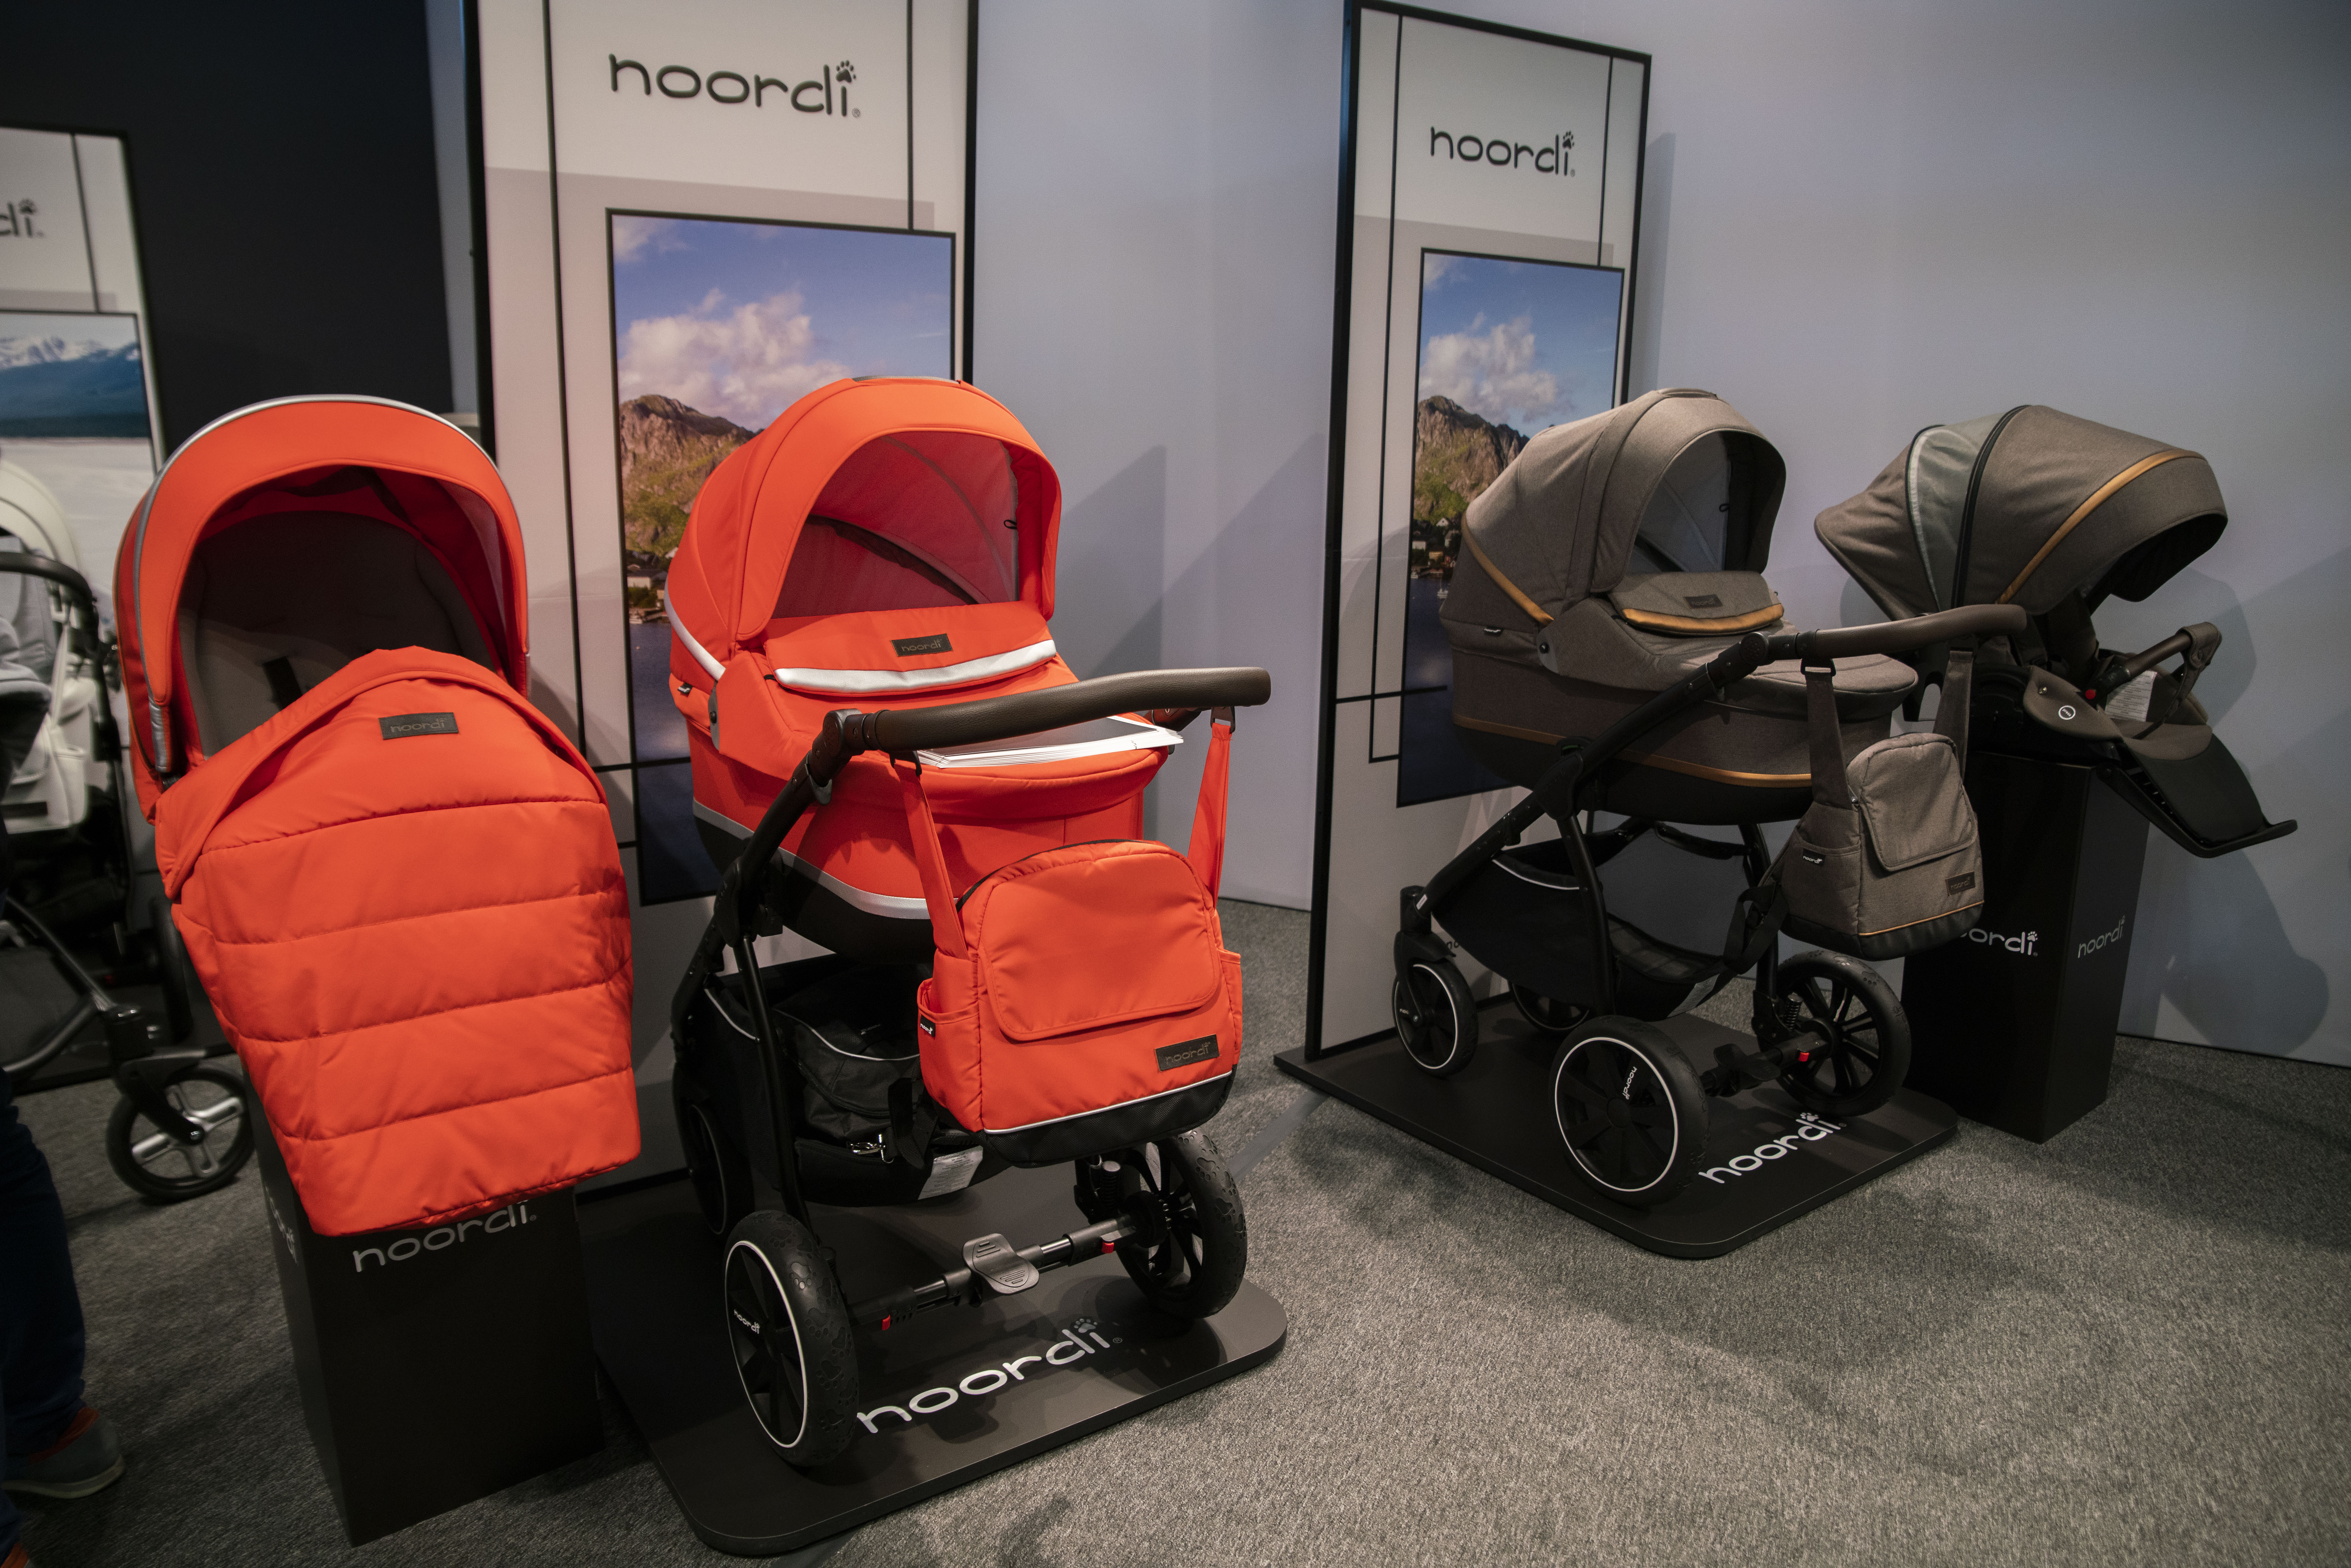 NOORDI innovations at Kids' Time 2019